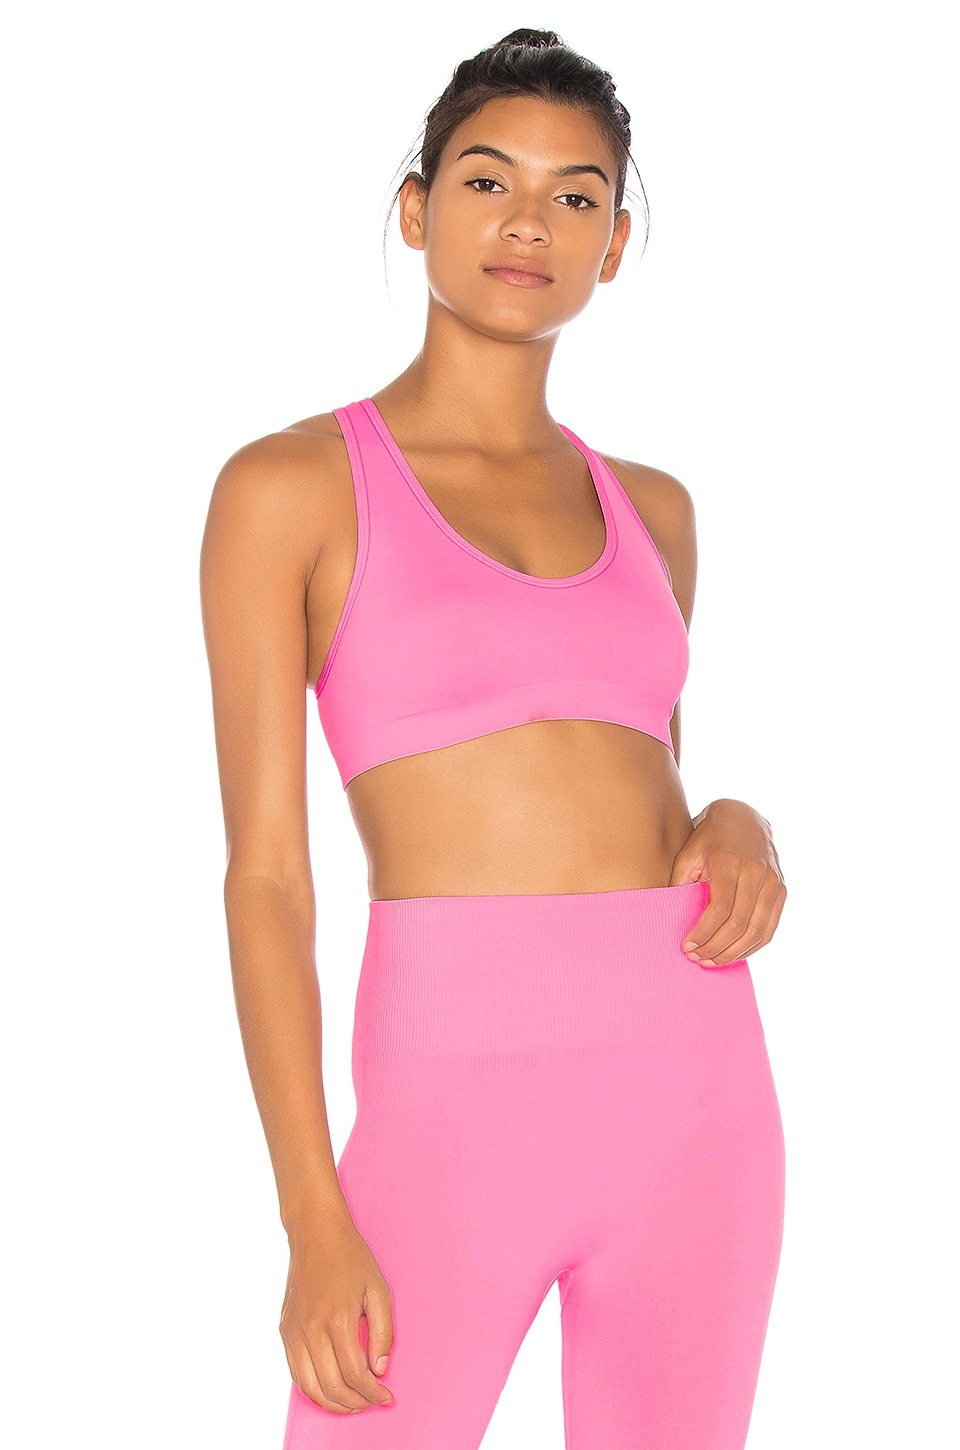 TLA by Morgan Stewart x MORGAN STEWART Cross Back Sports Bra in Pink